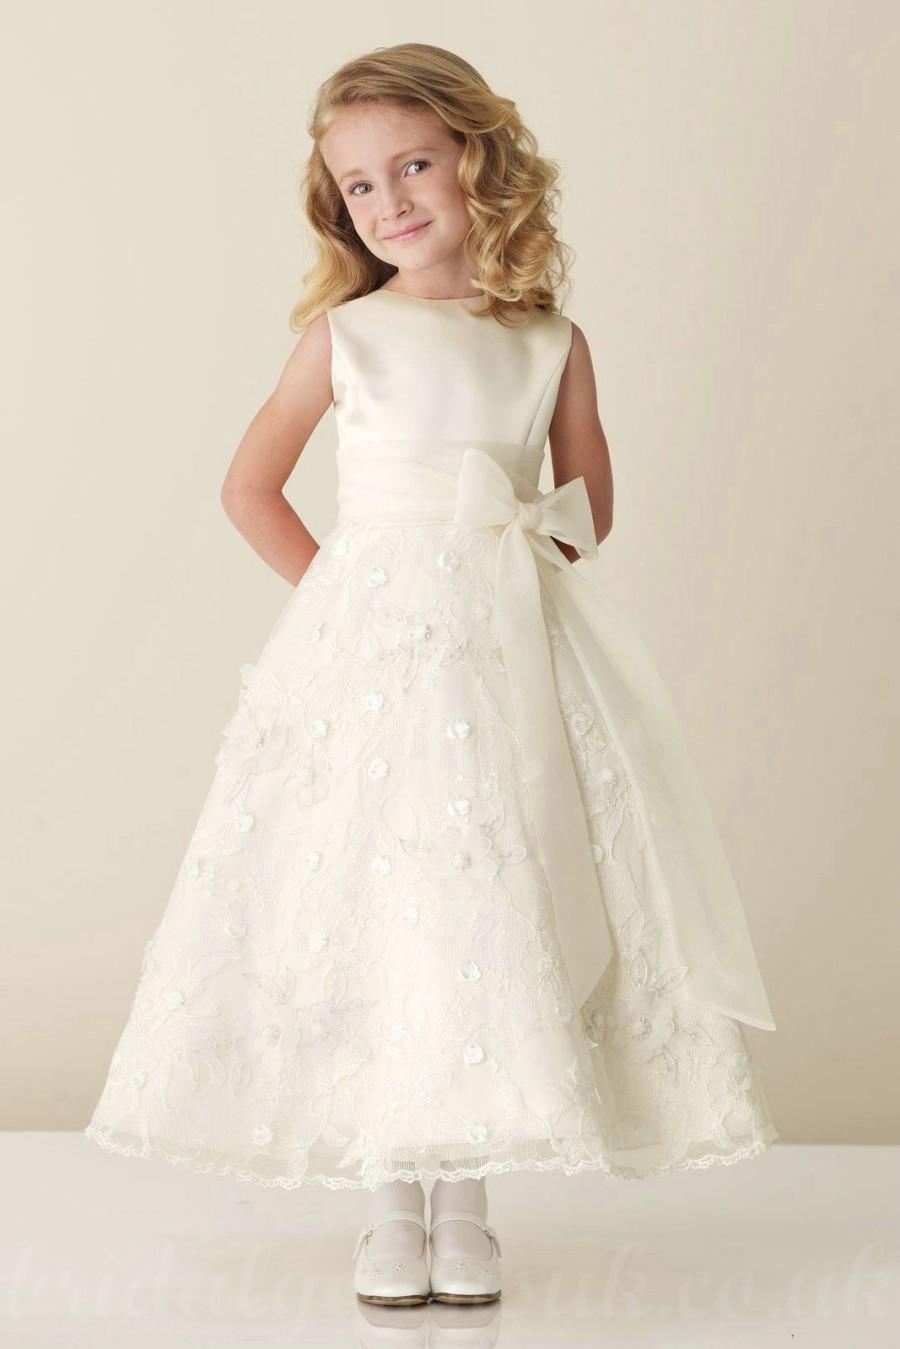 Satin Bateau A Line Bow Sash Inexpensive Perfect Flower Junior Bridesmaid Dress Dresses 58weddingdress